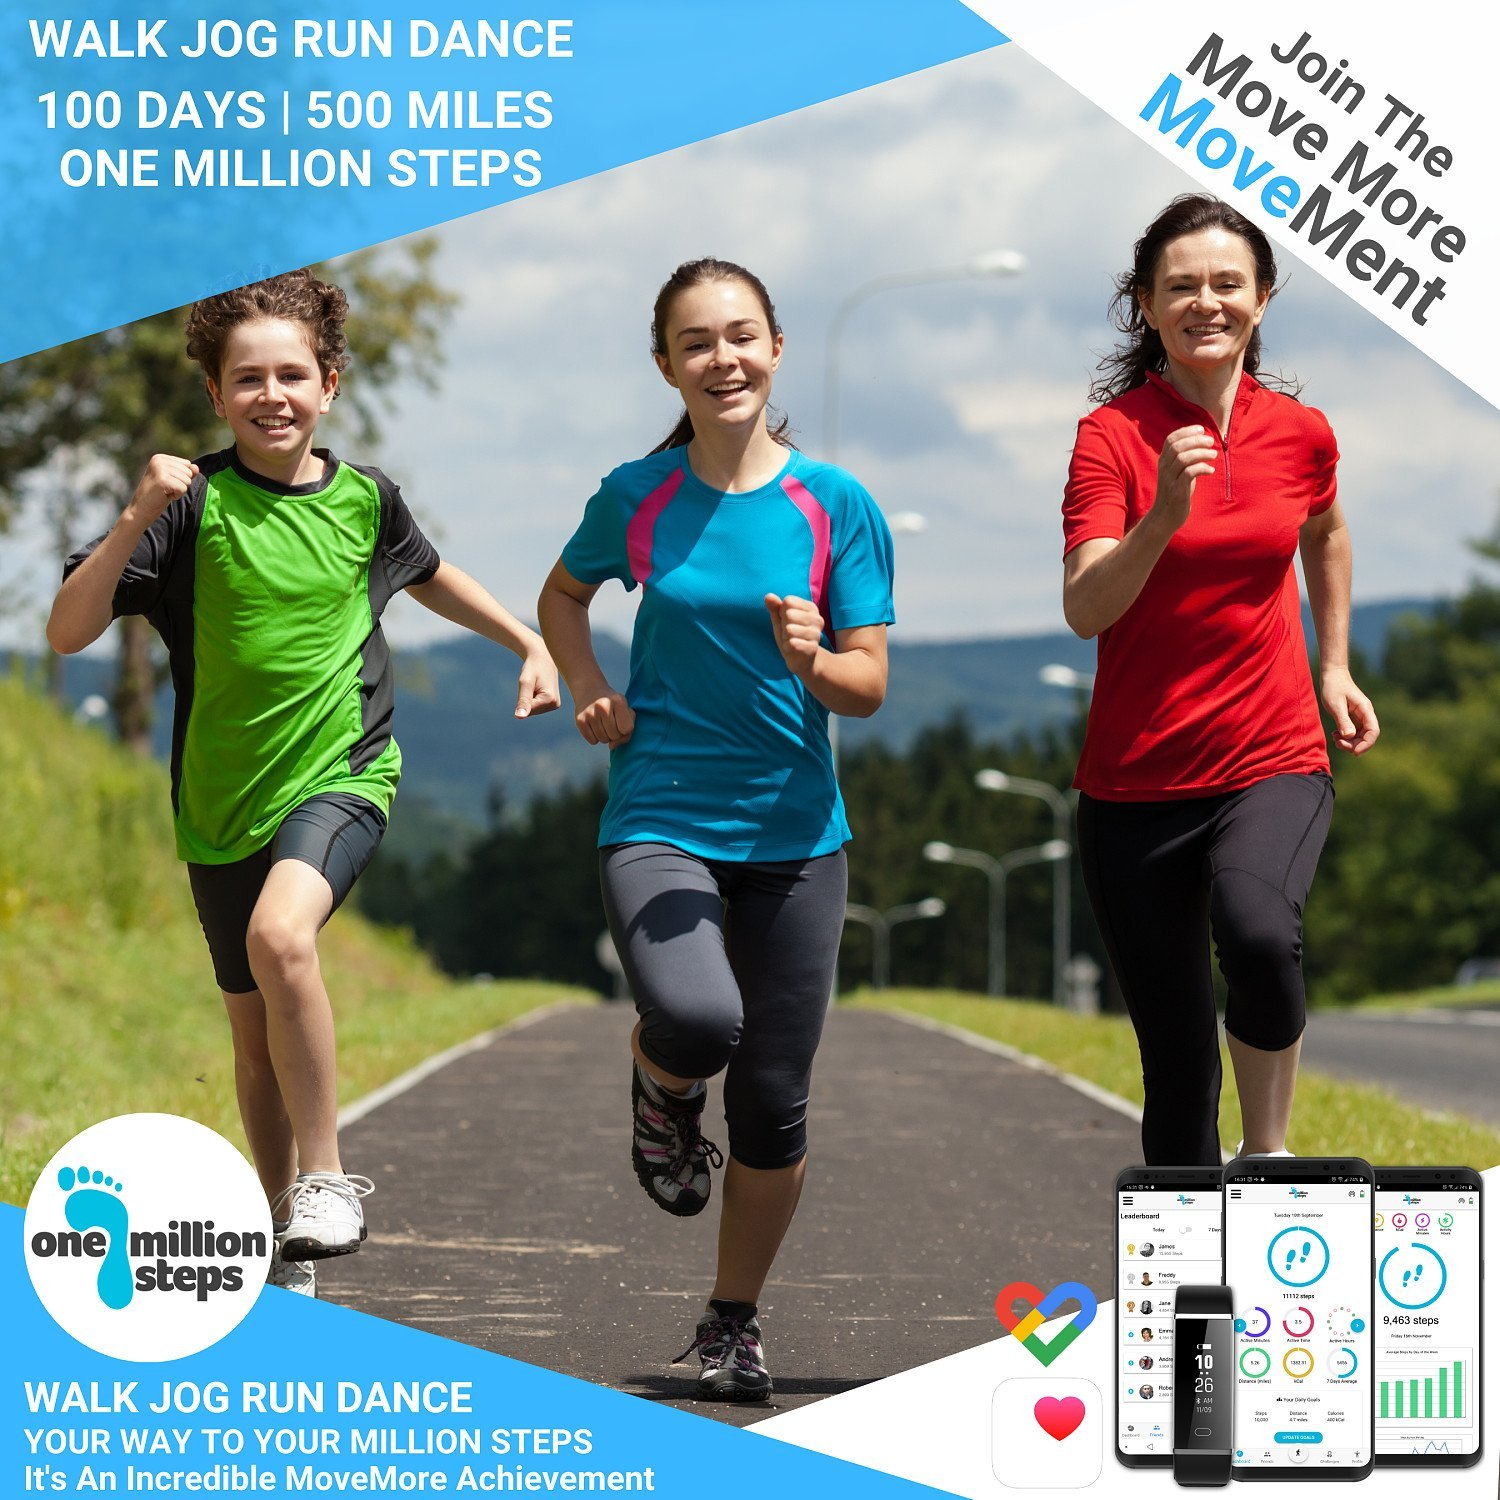 £19.99 (40% OFF) Million Steps Challenge with Bluetooth Sports Tracker